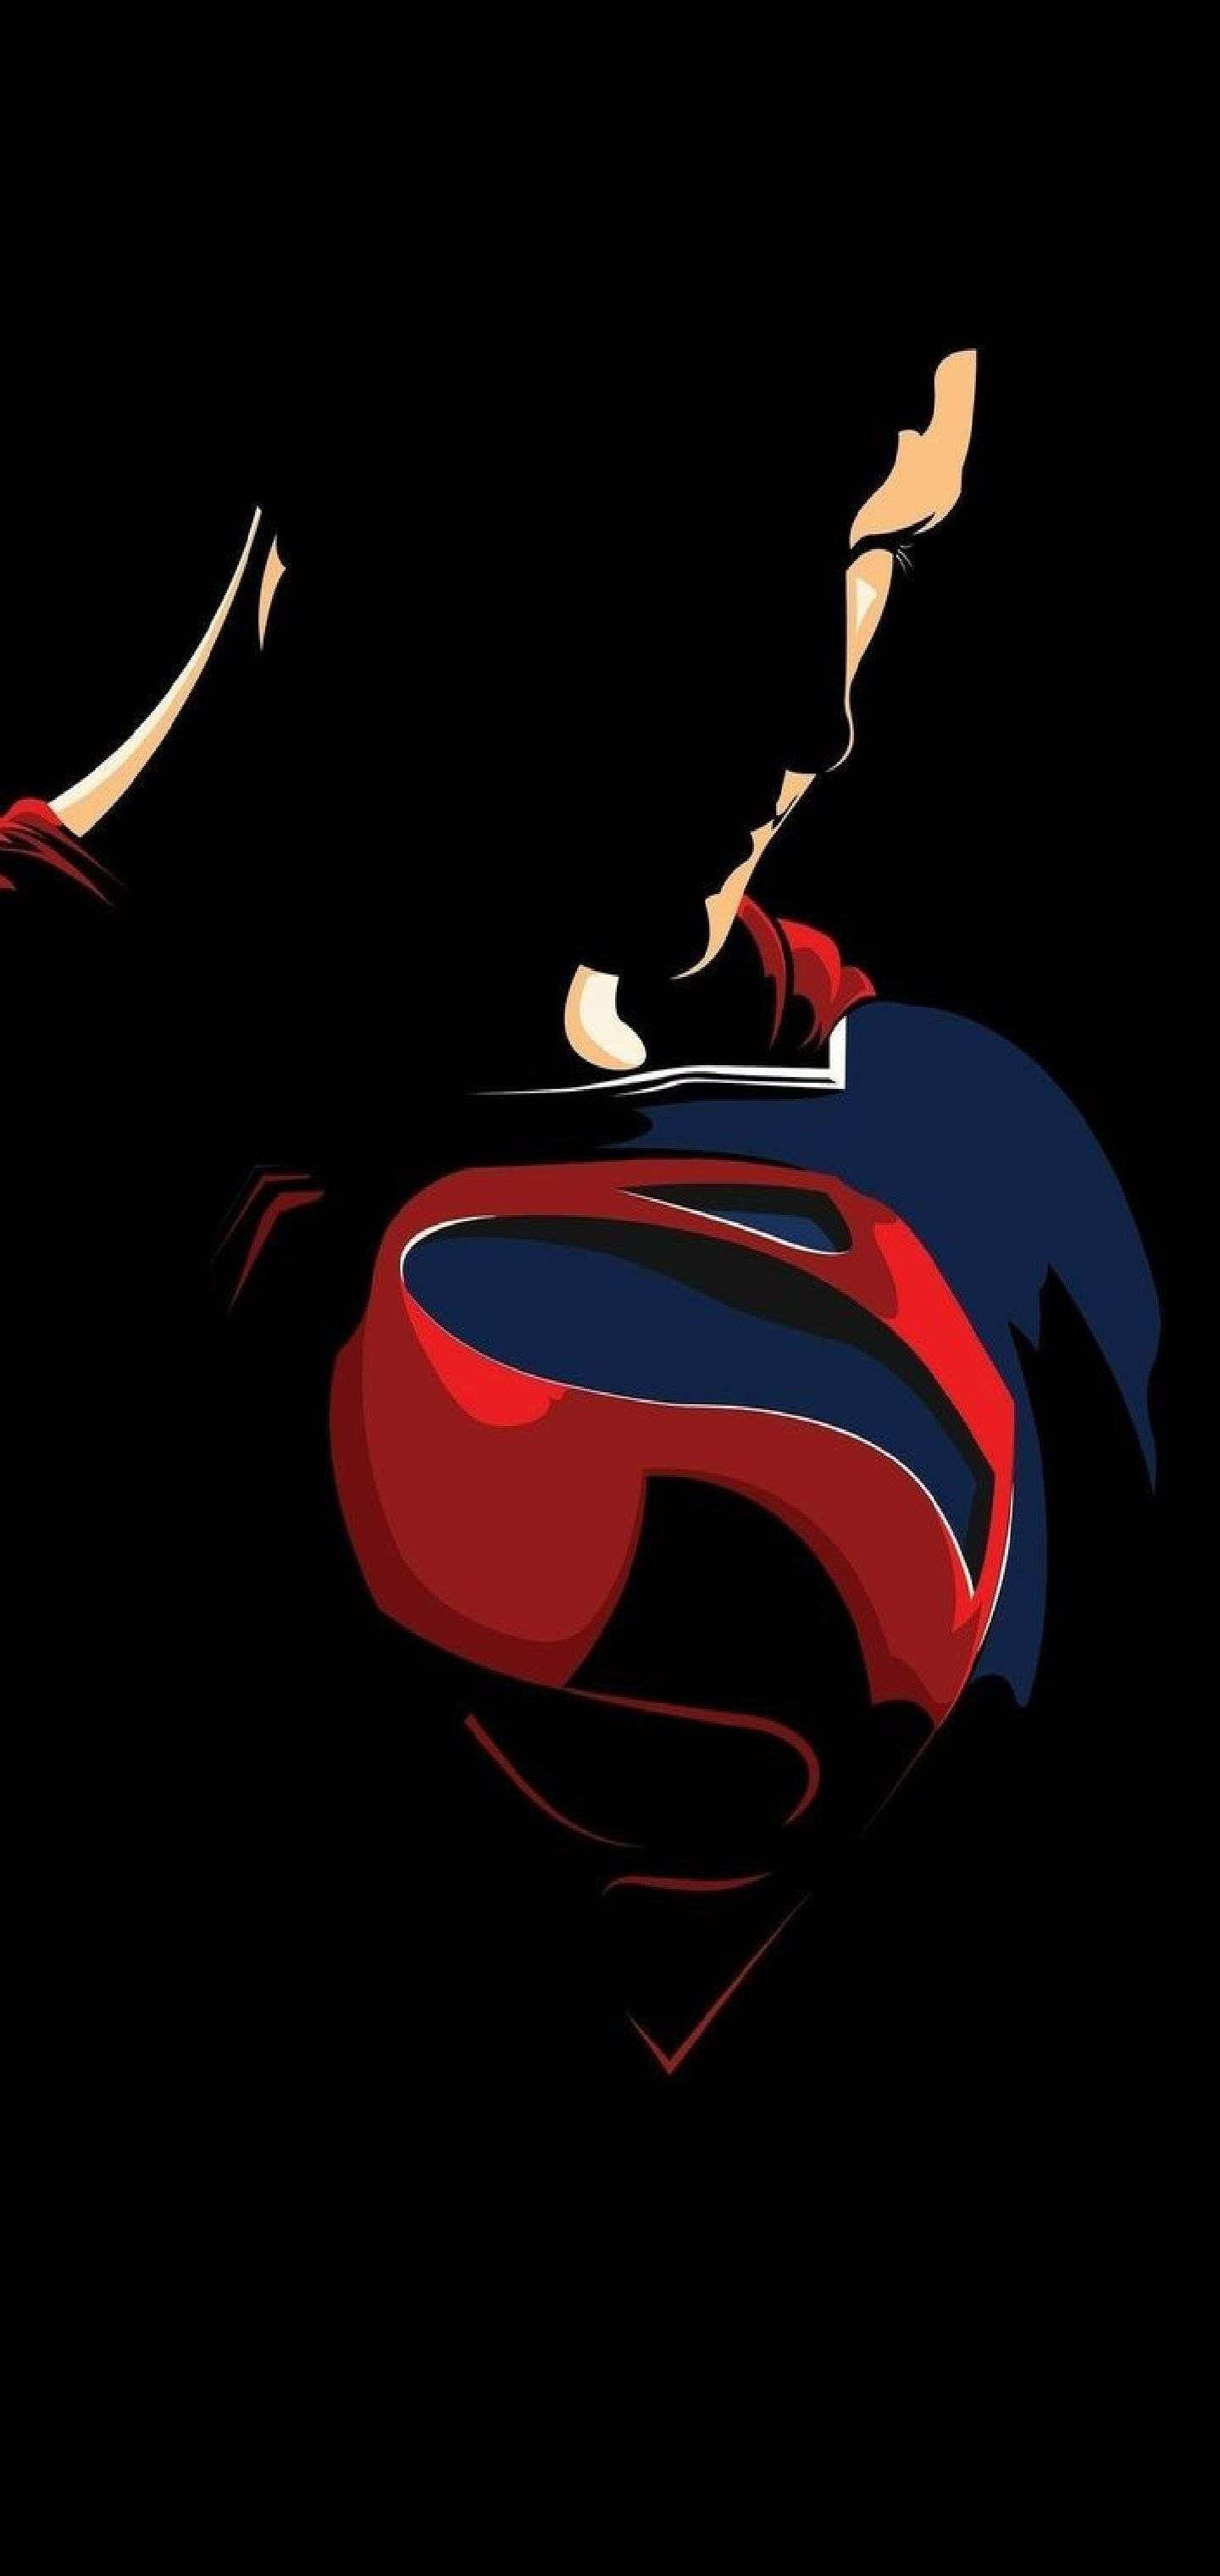 Samsung Galaxy S20 Ultra Wallpaper For Punch Hole In 2020 Superman Artwork Dc Comics Wallpaper Superman Wallpaper